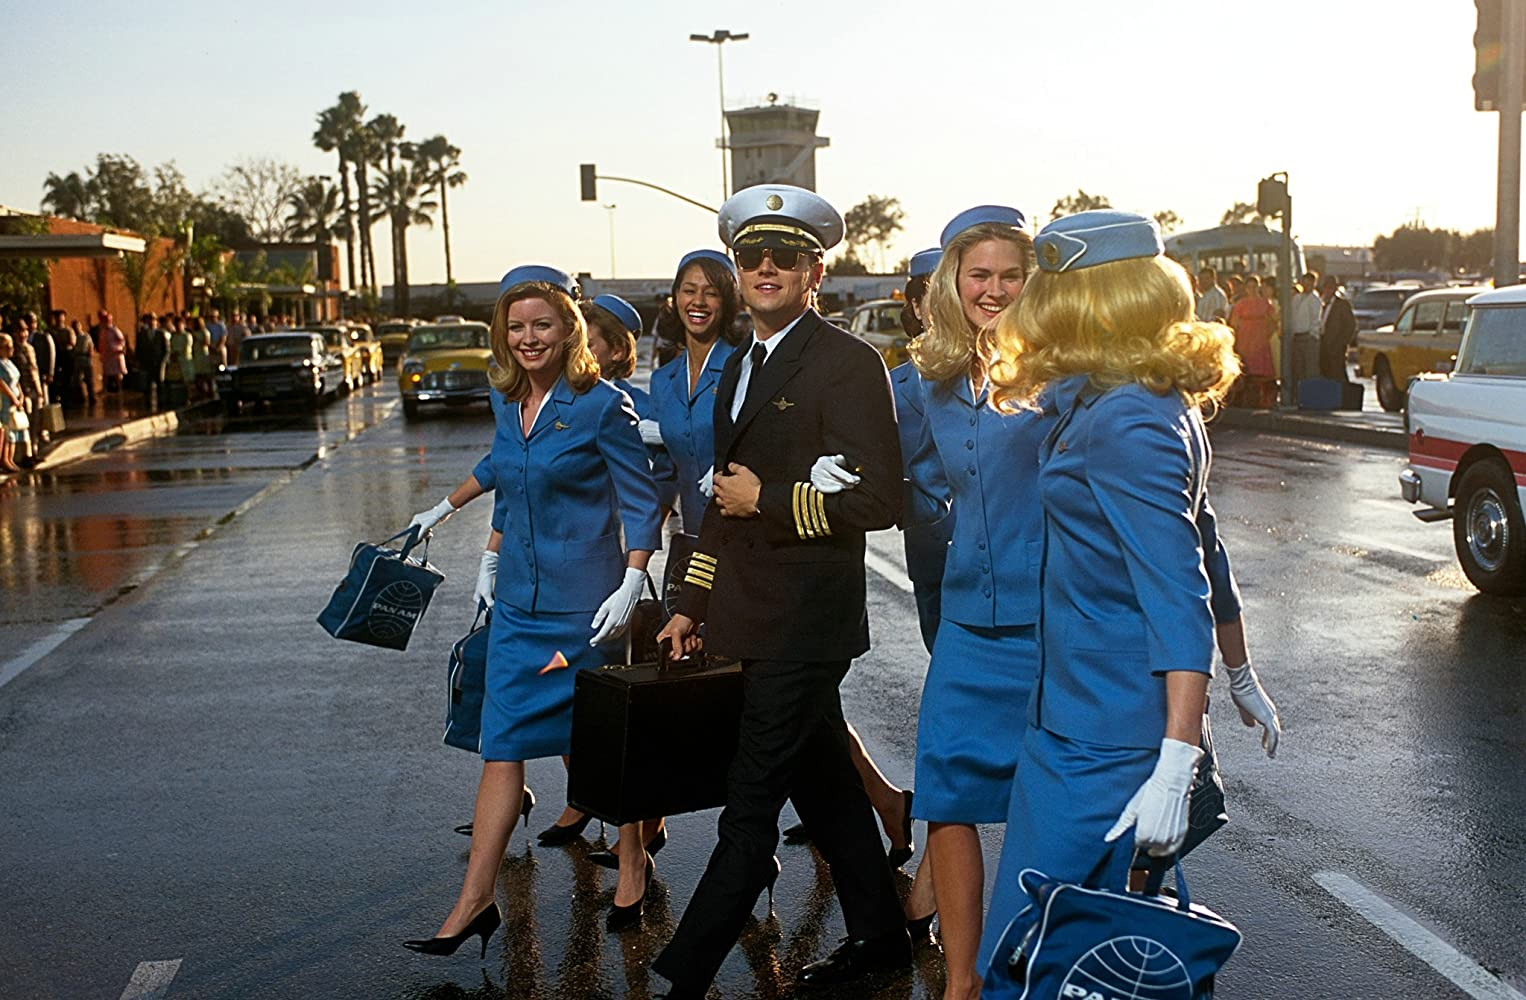 Leonardo DiCaprio, Karrie MacLaine, and Hilary Rose Zalman in Catch Me If You Can (2002)